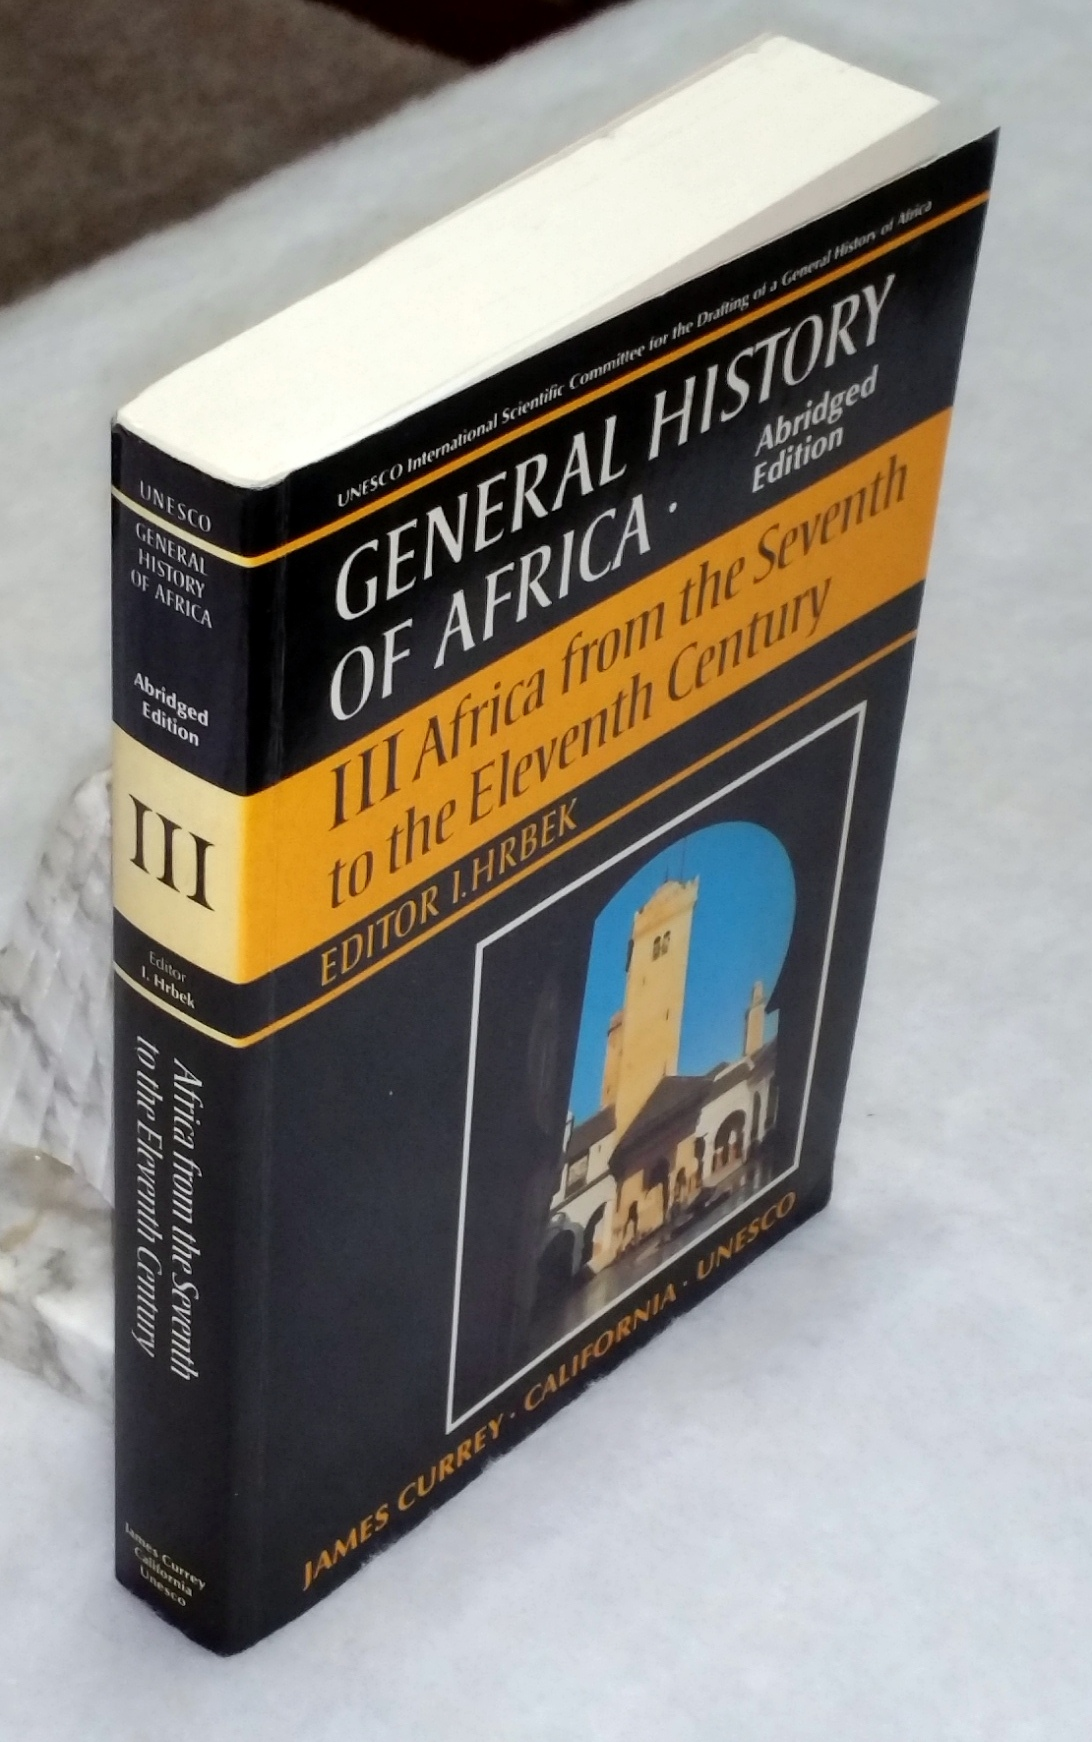 Image for General History of Afrca, III:  Africa from the Seventh to the Eleventh Century (Volume III ONLY of the Eight Volume set)